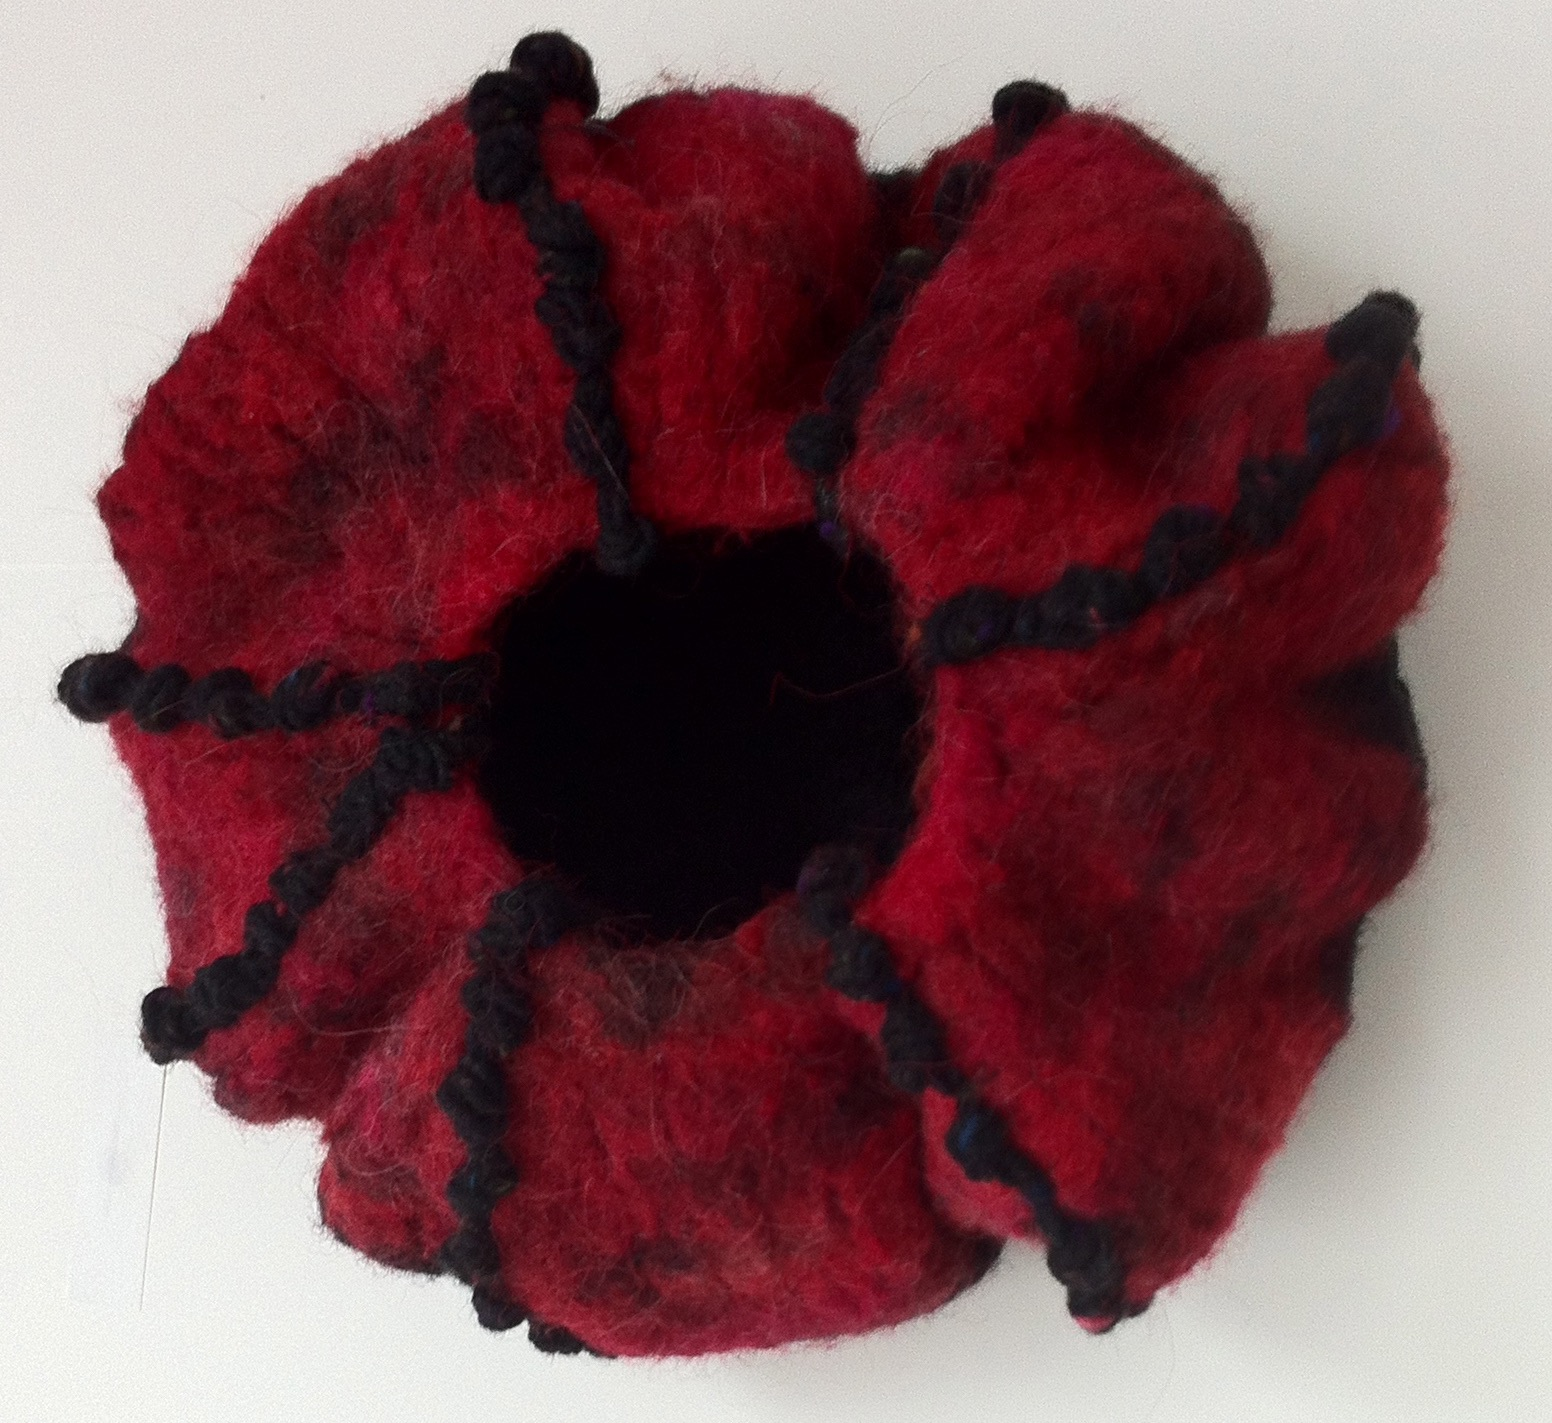 Red and Black felted vessel